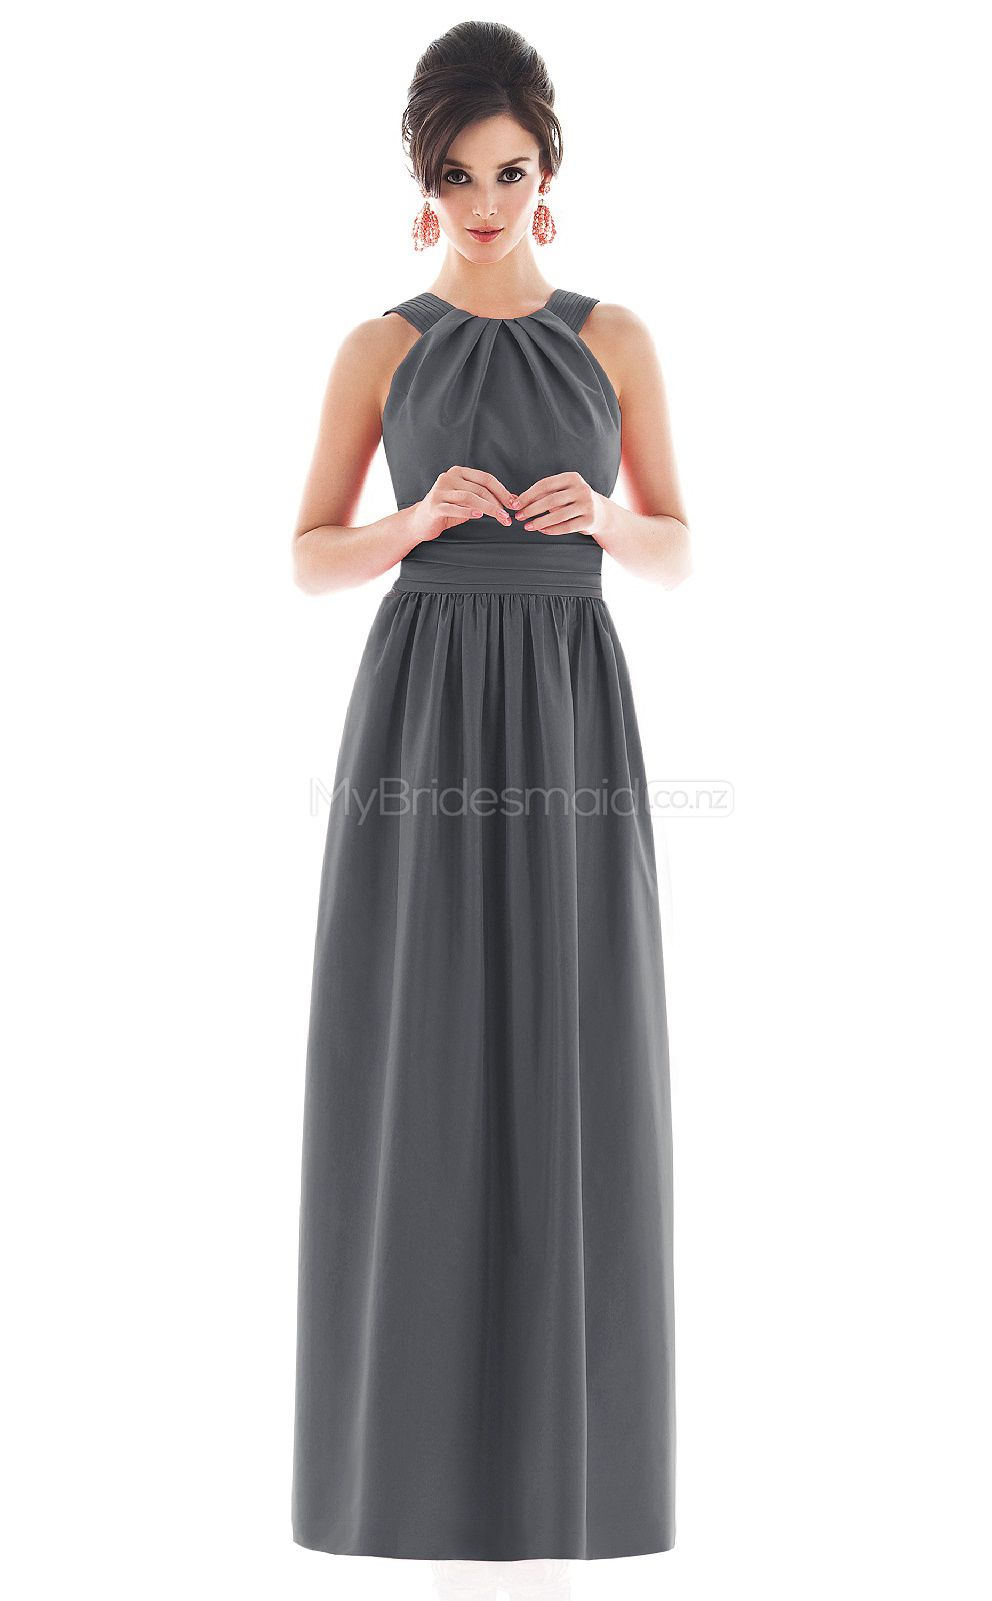 Gray taffeta a line off the shoulder floor length vintage gray taffeta a line off the shoulder floor length vintage bridesmaid dresses nzbd06675 ombrellifo Gallery